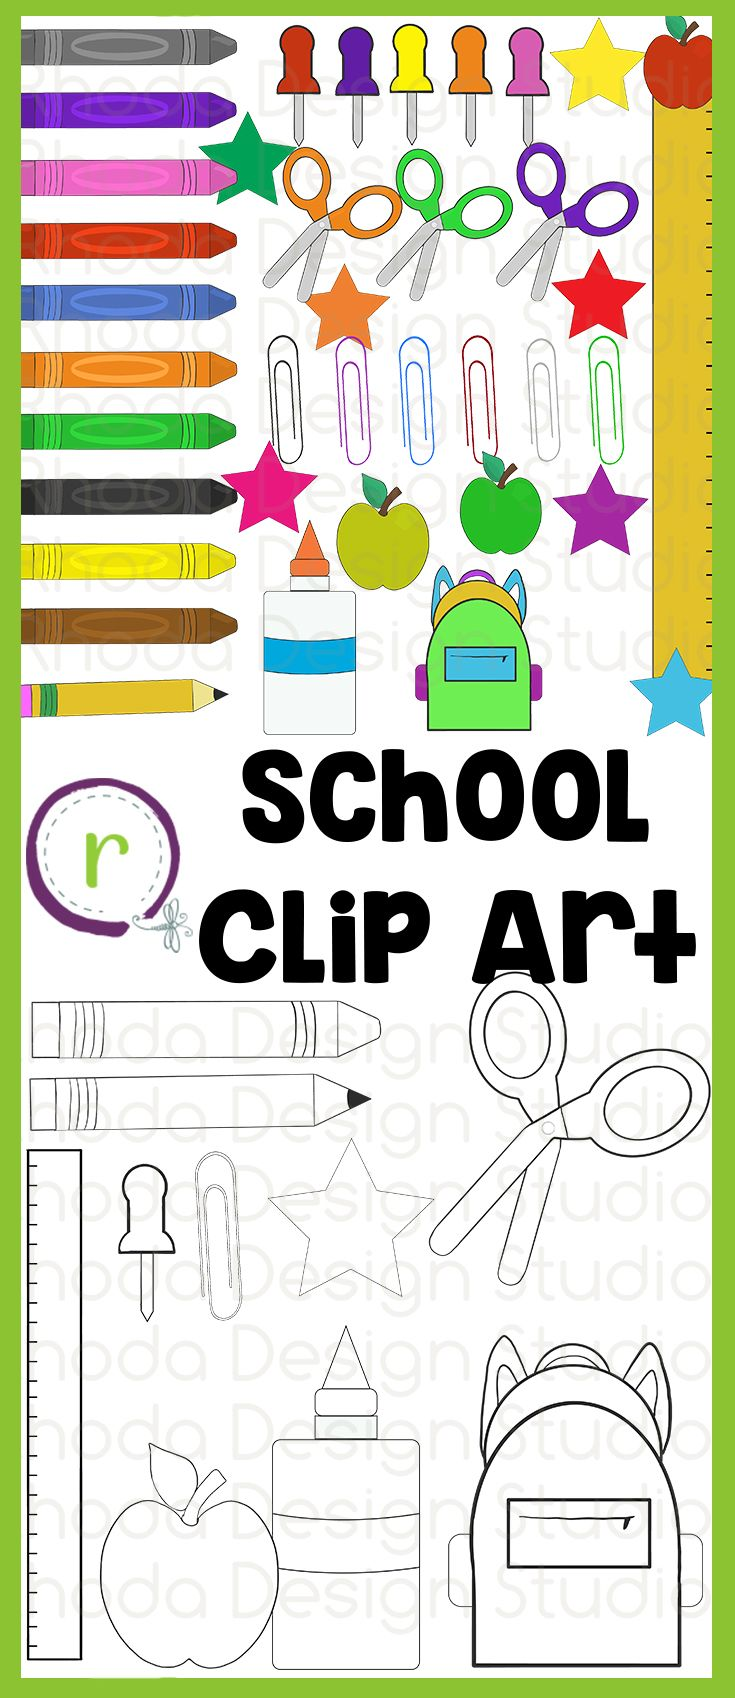 Office and school supply graphics that you can use on back to school resources or every day classroom resources. Includes glue, scissors, paper clips, crayons, pencils, a backpack, apples, stick pins, and a ruler.  48 individual, high resolution (300 dpi) PNG files. 38 colored images and 10 black line images.